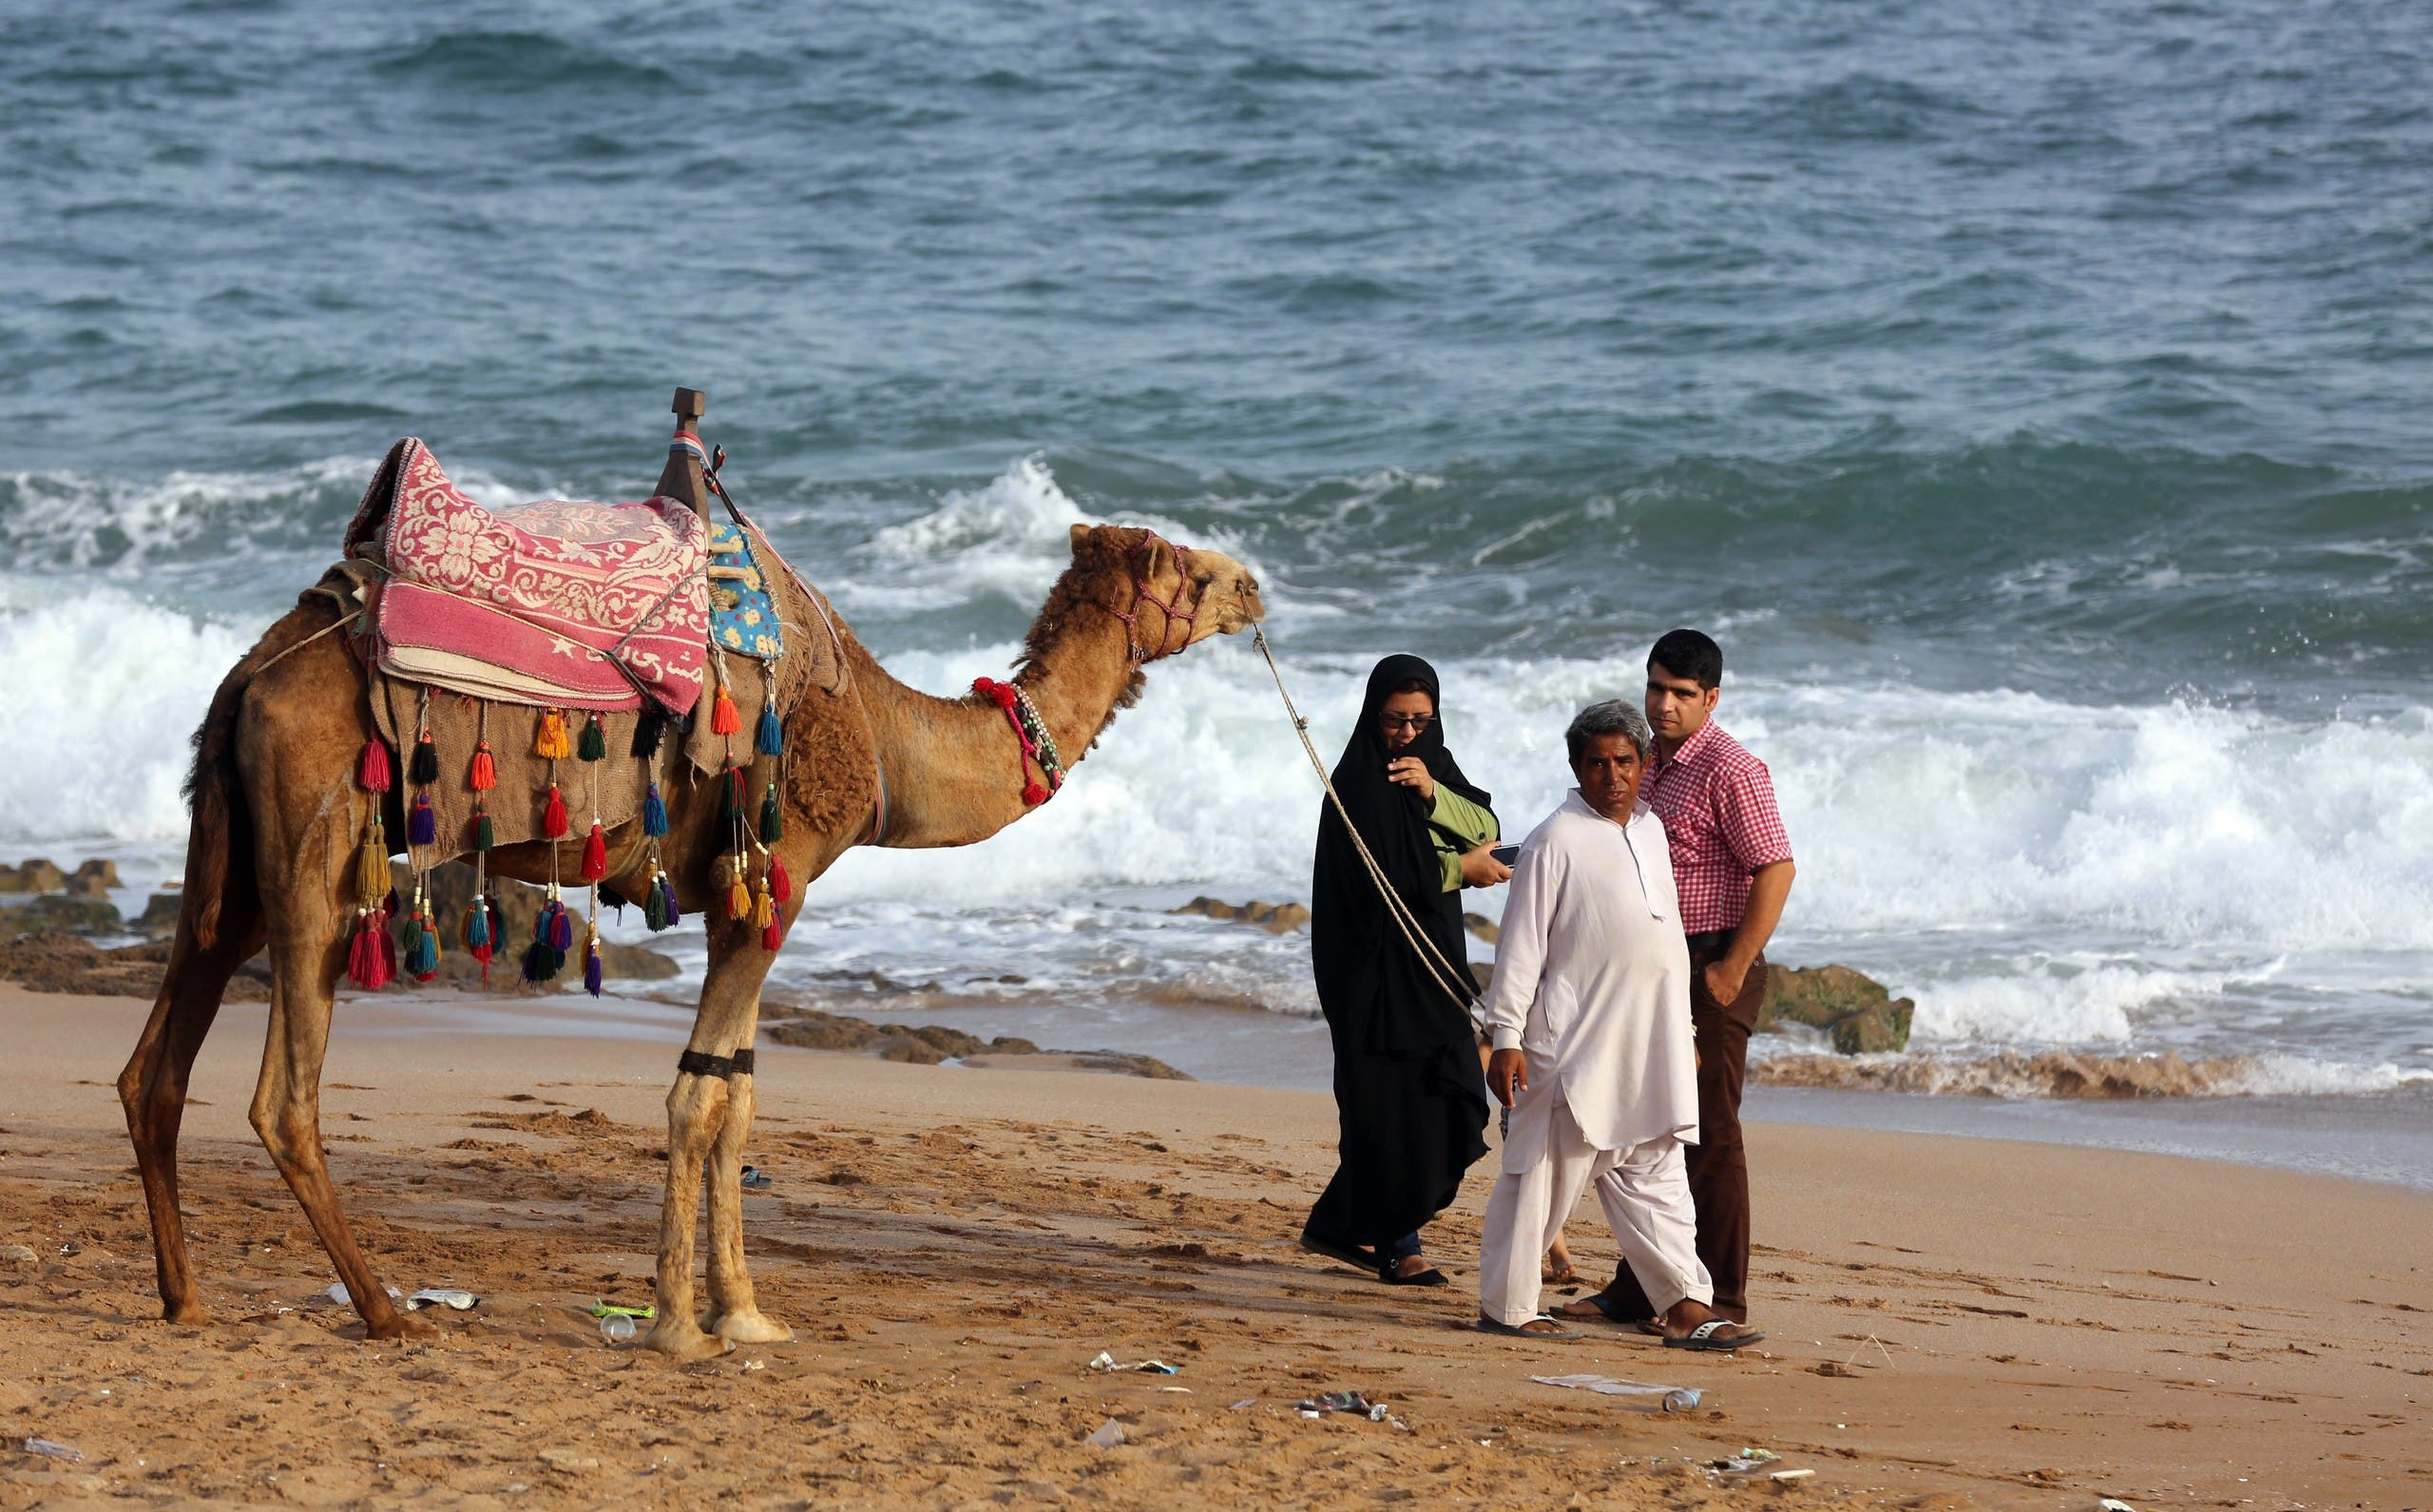 An Iranian family prepare to ride a camel on the beach in the southern Iranian coastal city of Chabahar on May 11, 2015. (File photo: AP)